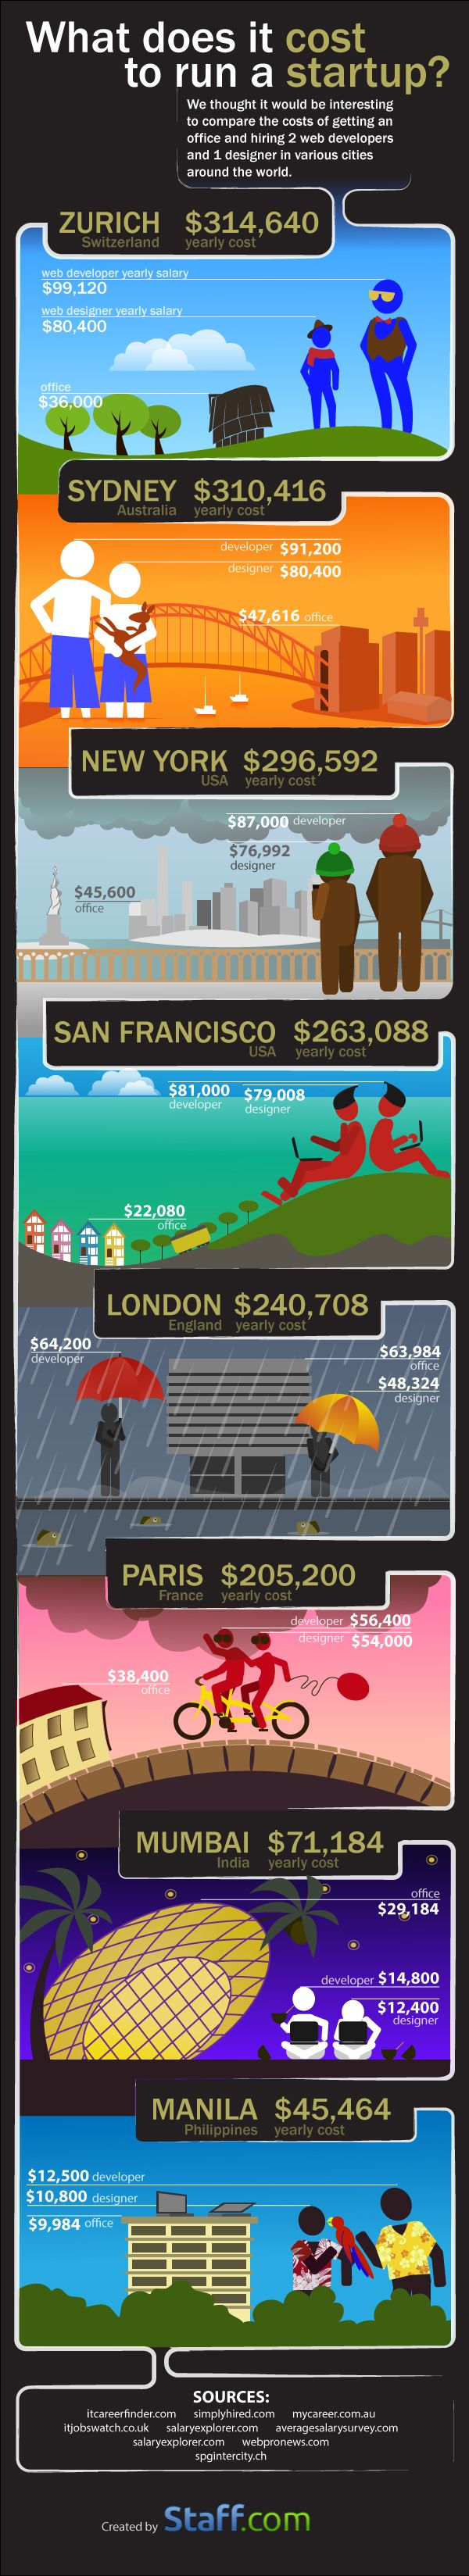 What Does It Cost to Run a Startup [Comparison from several cities in the world]? #Infographic